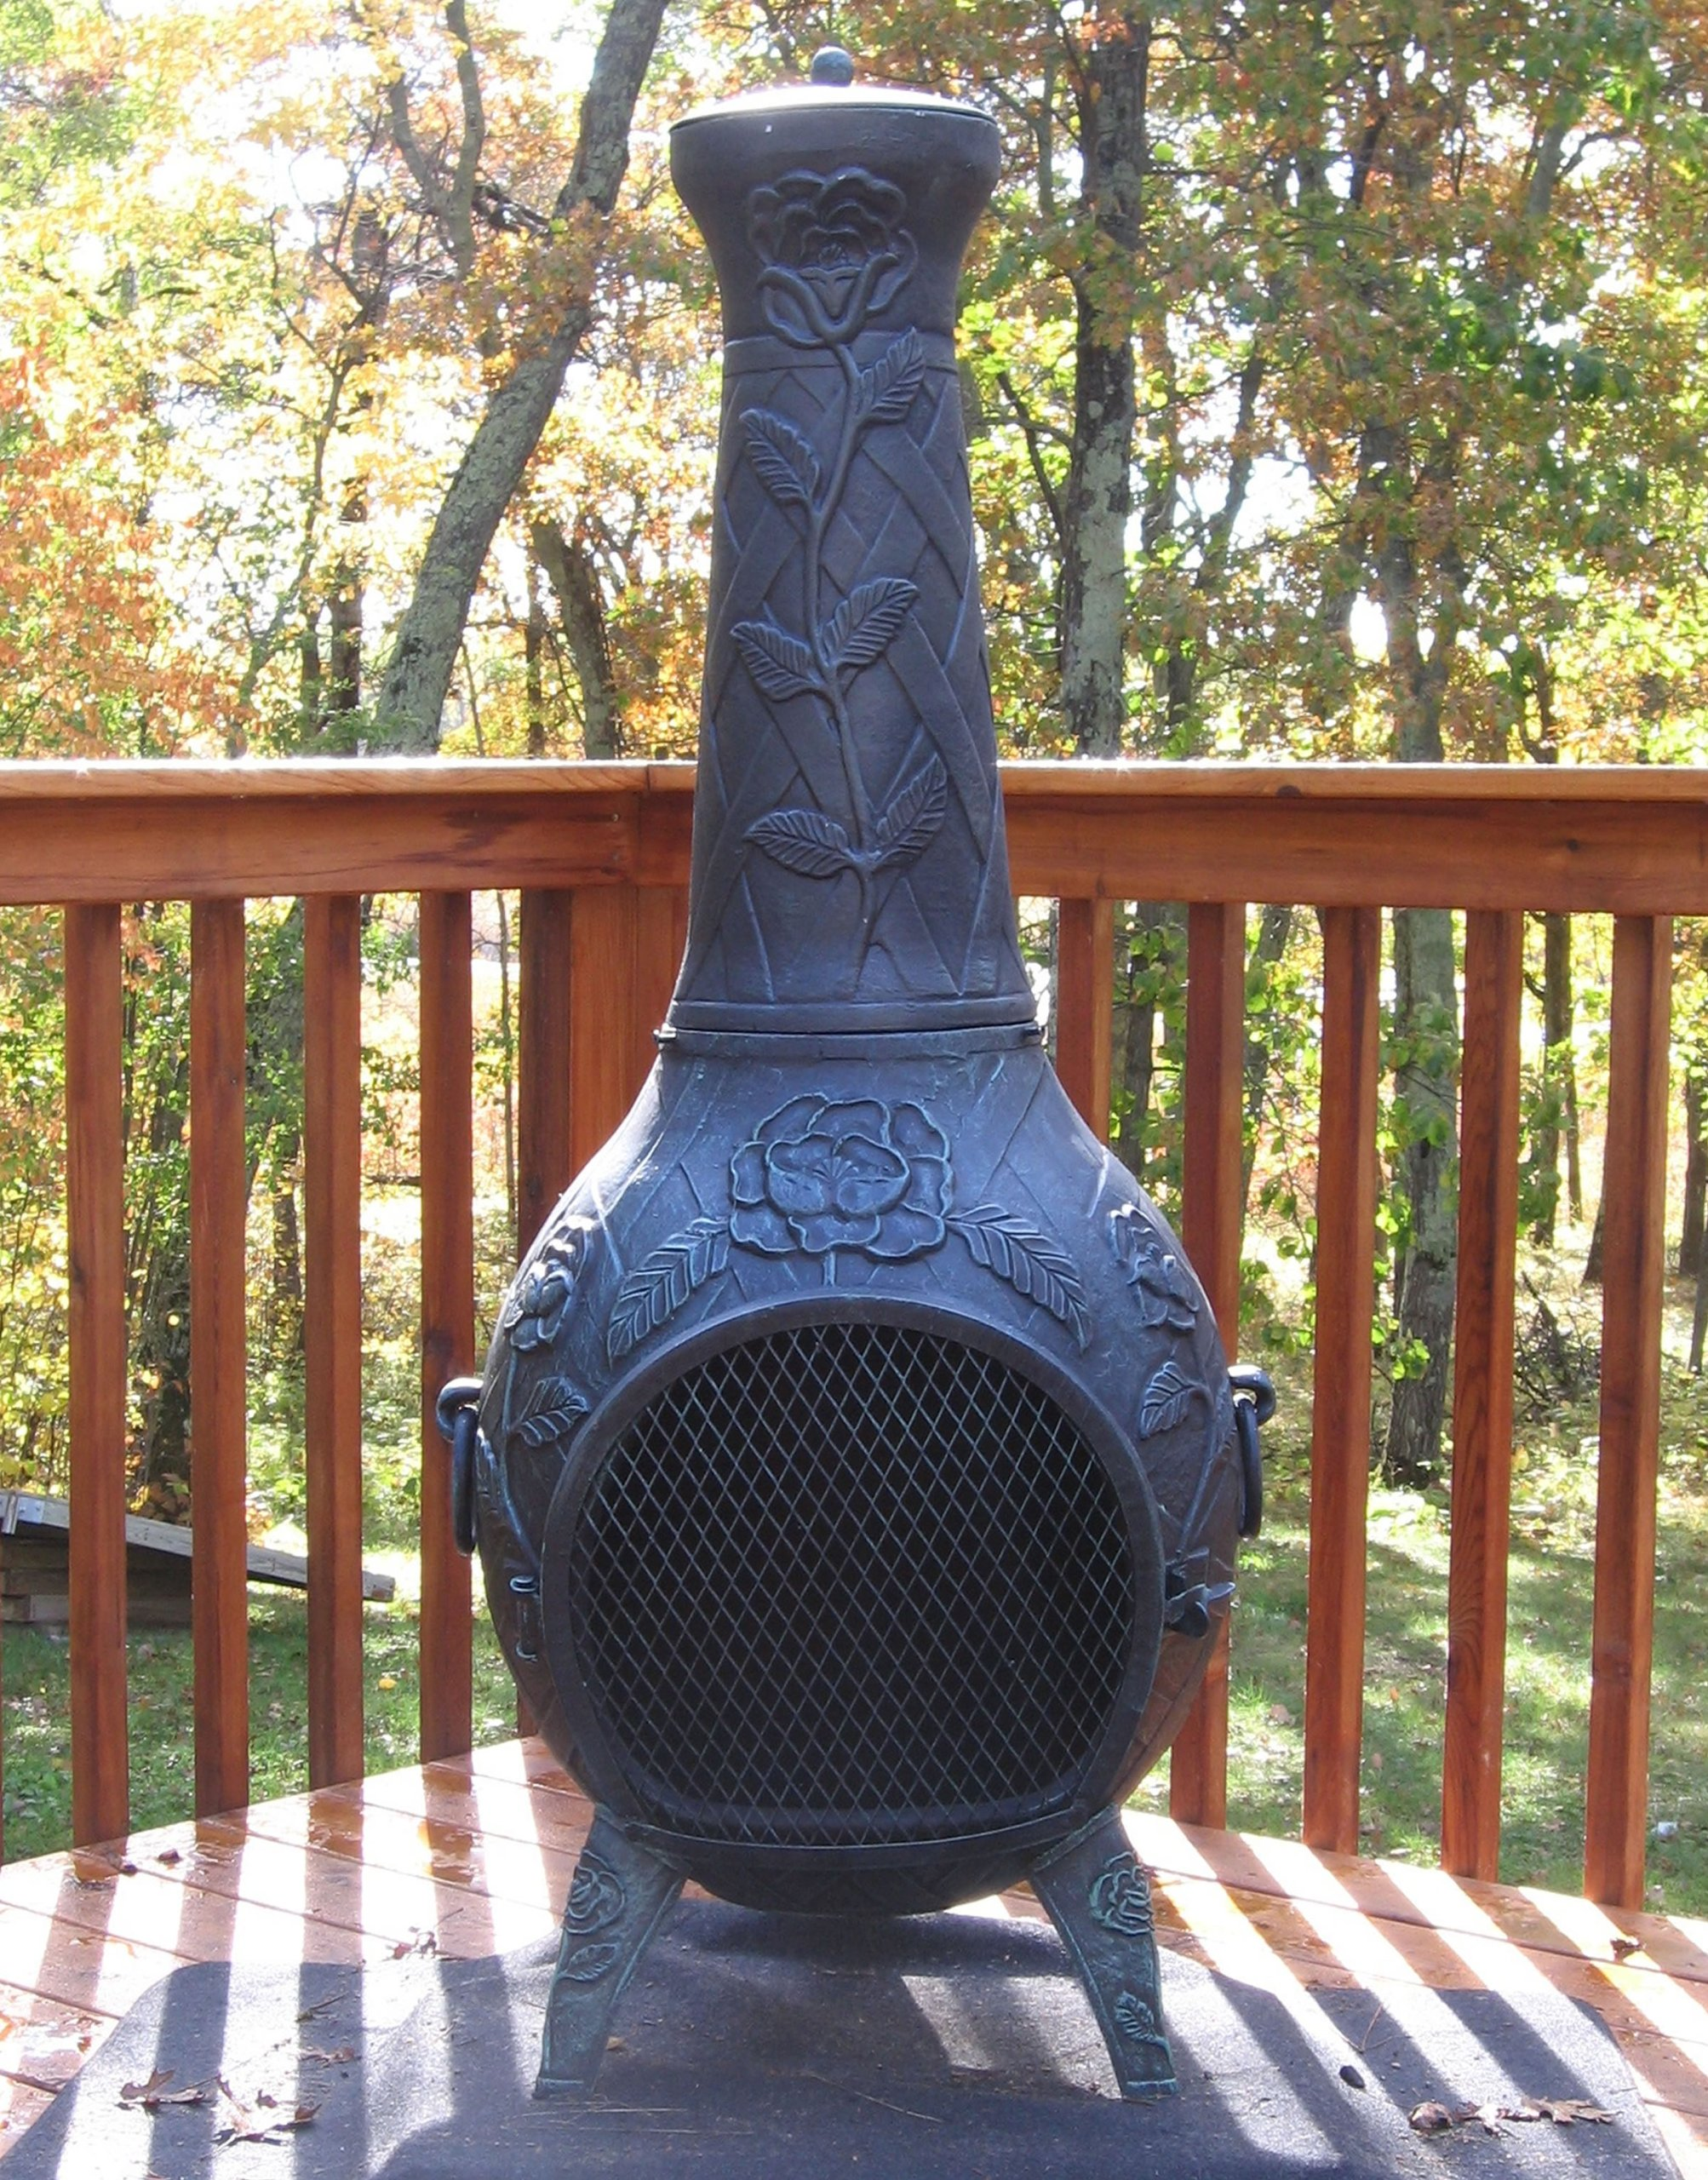 The Blue Rooster Co. Rose Style Cast Aluminum Wood Burning Chiminea in Antique Green.